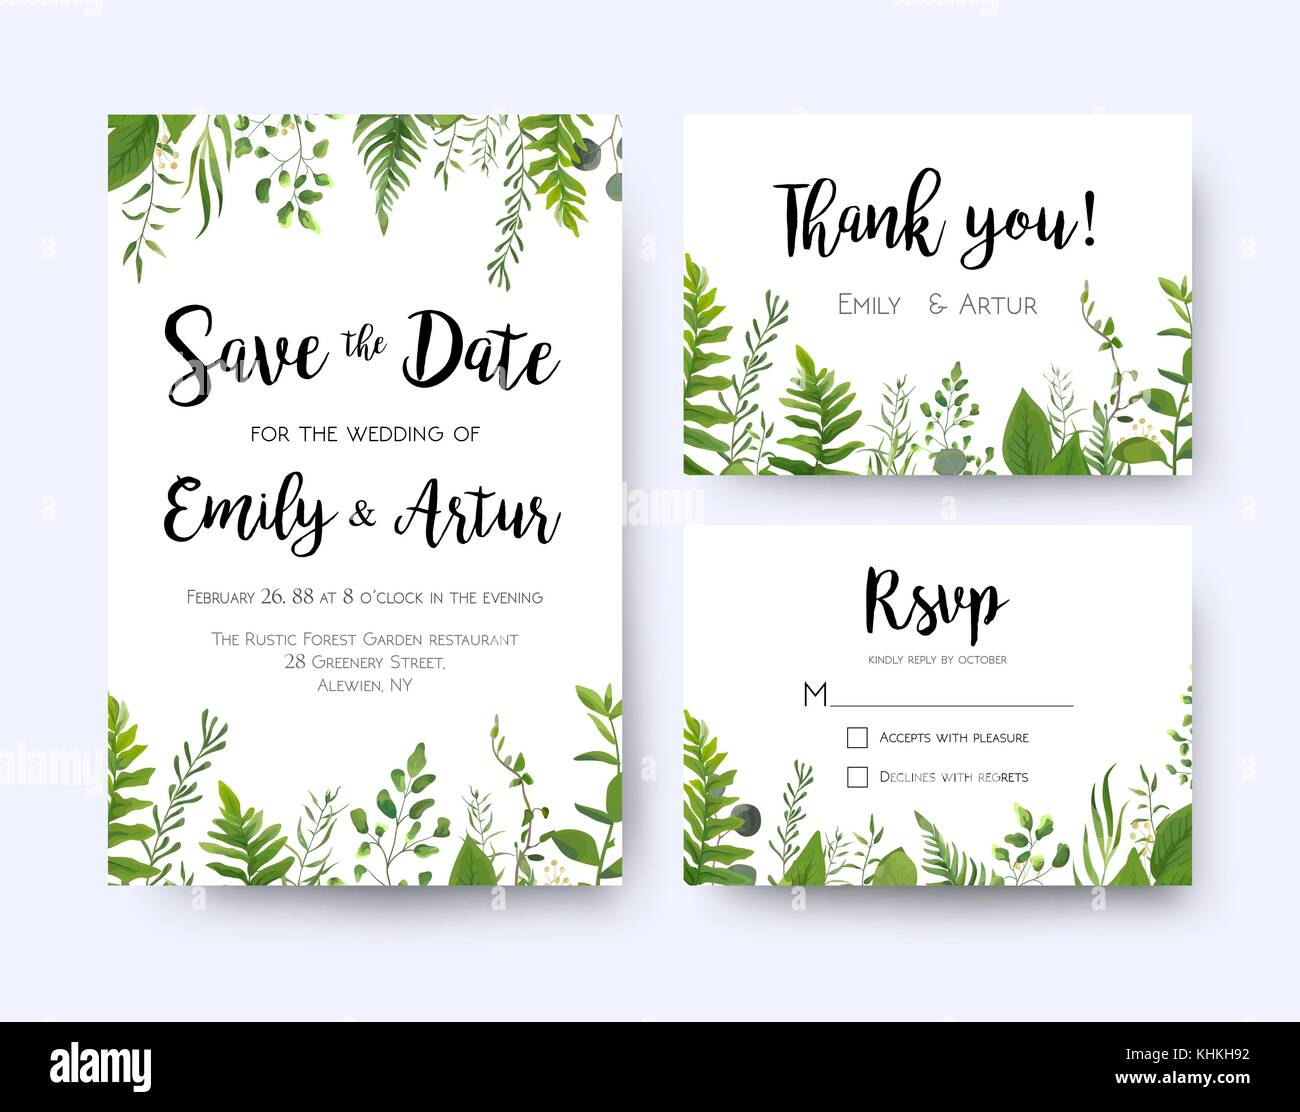 Wedding invite, invitation menu rsvp thank you card vector floral ...